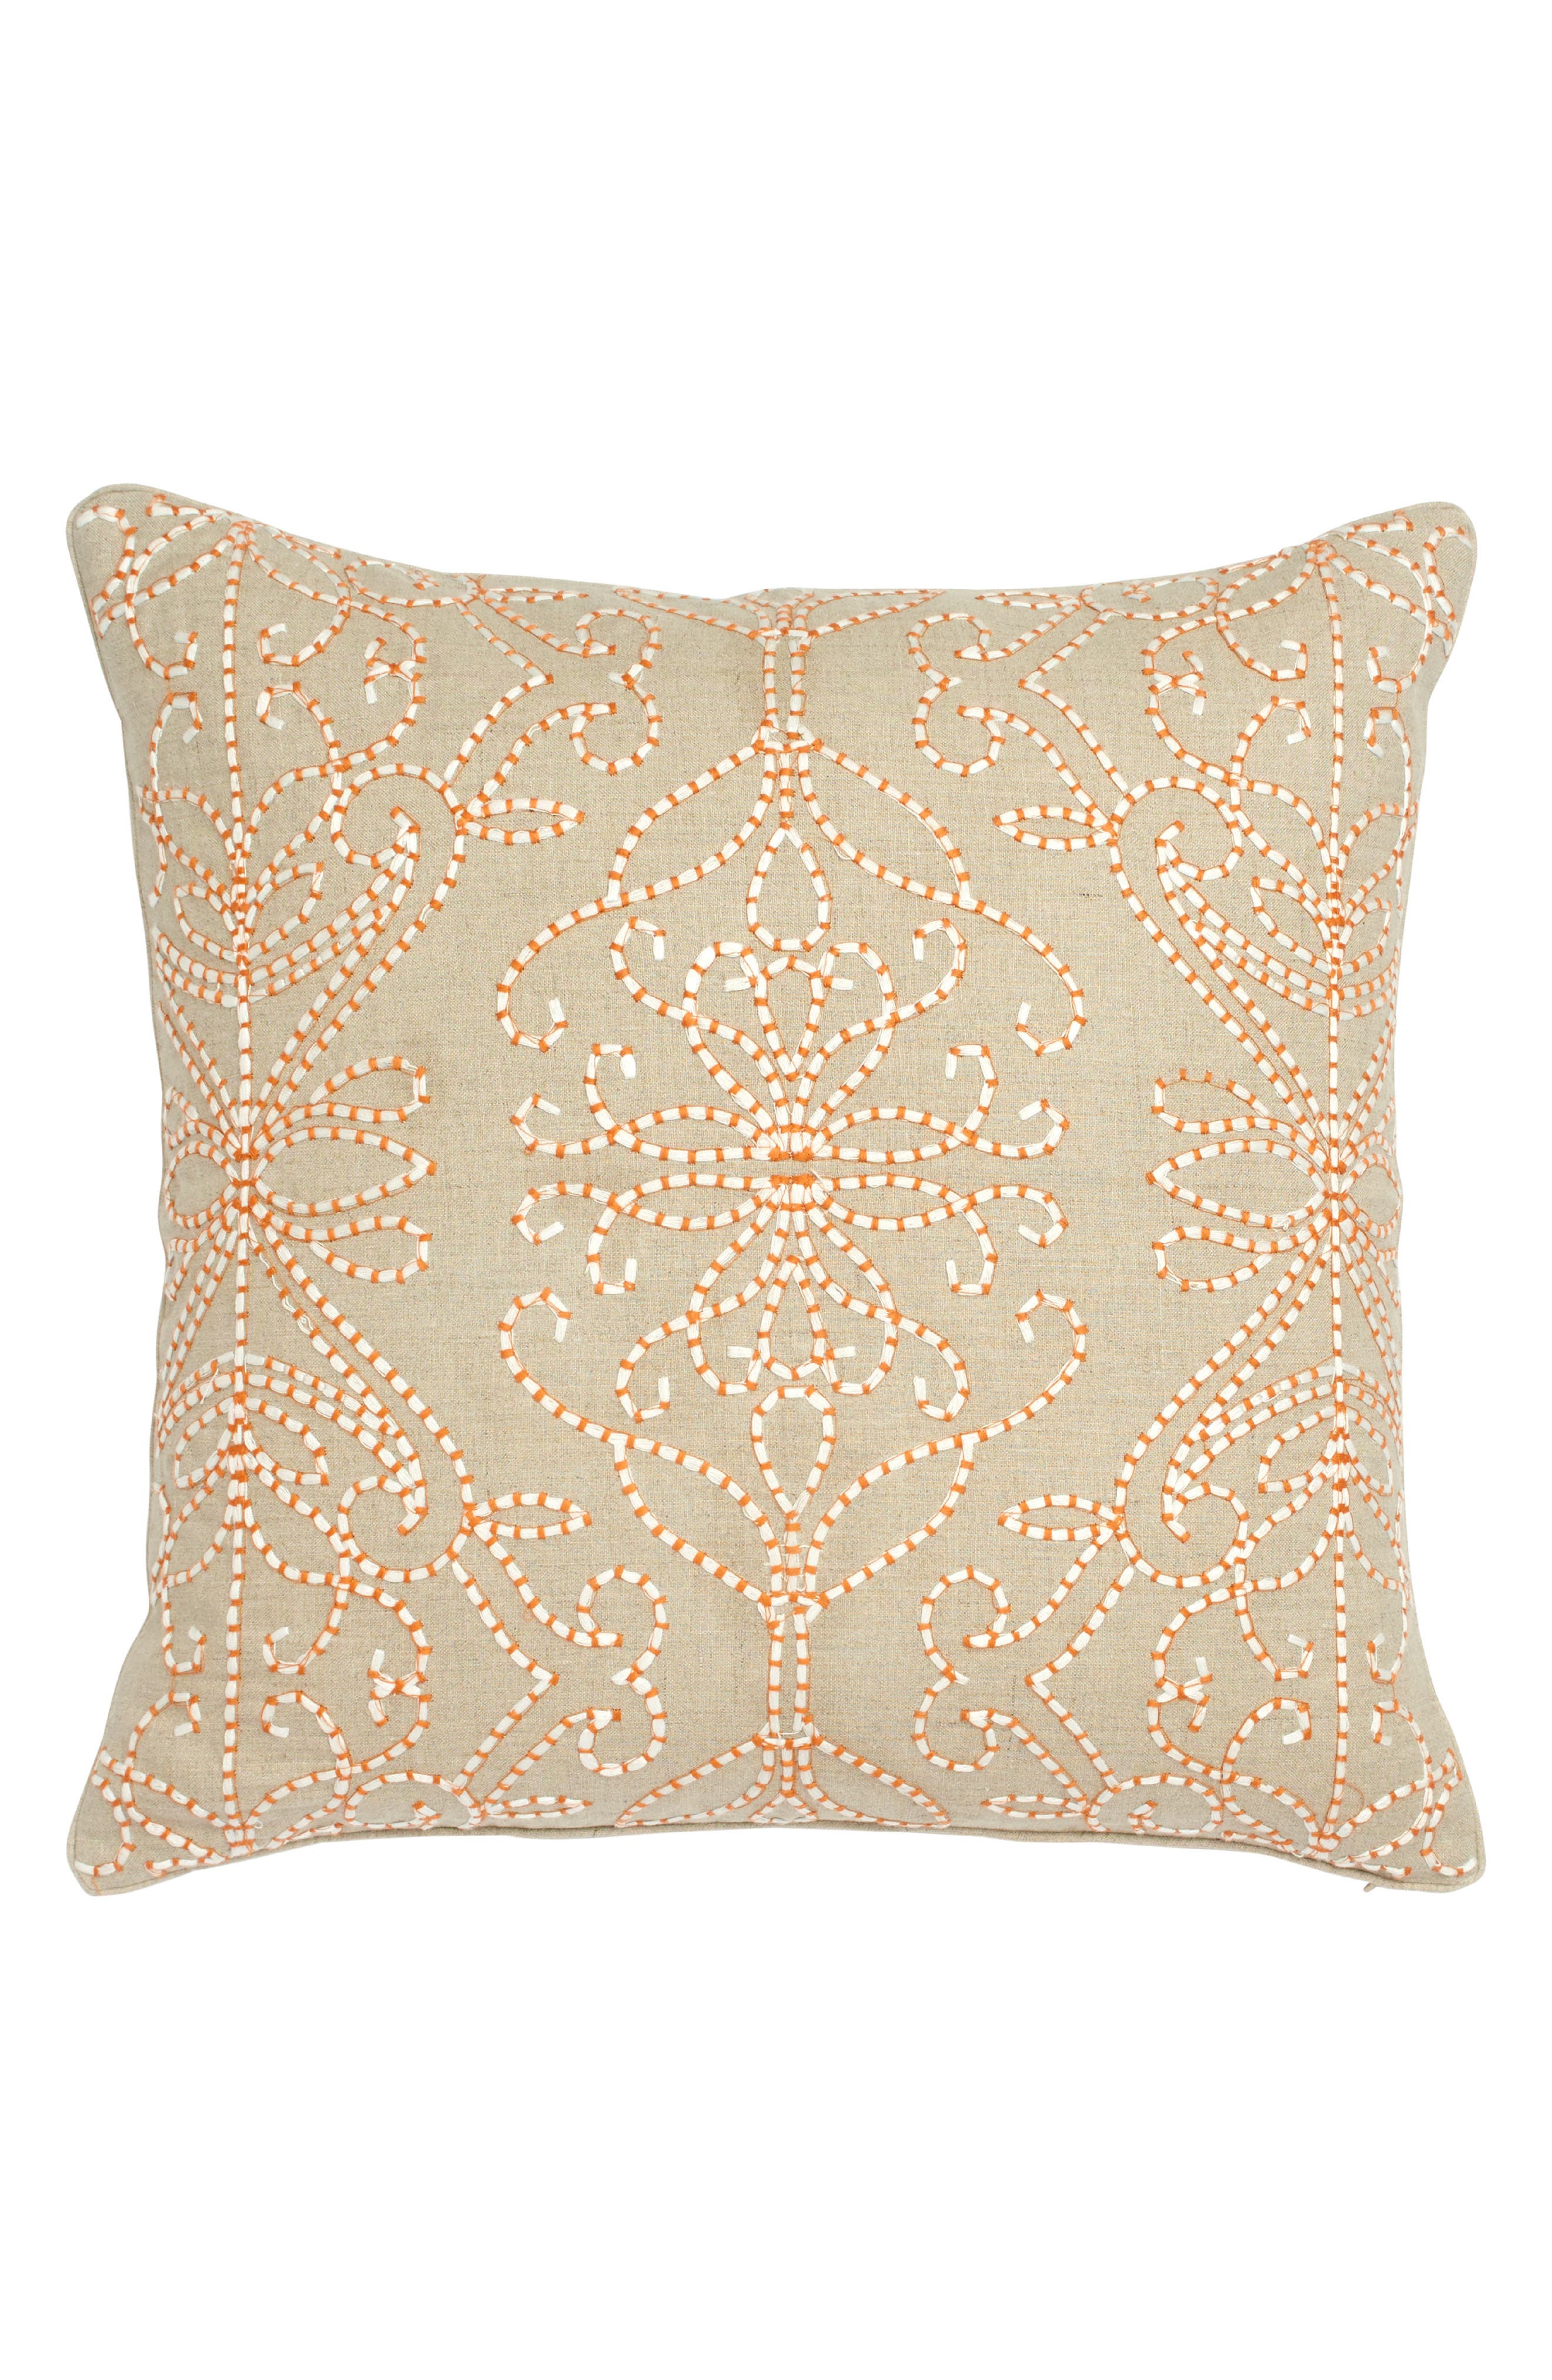 Amazilia Embroidered Accent Pillow,                         Main,                         color, Taupe